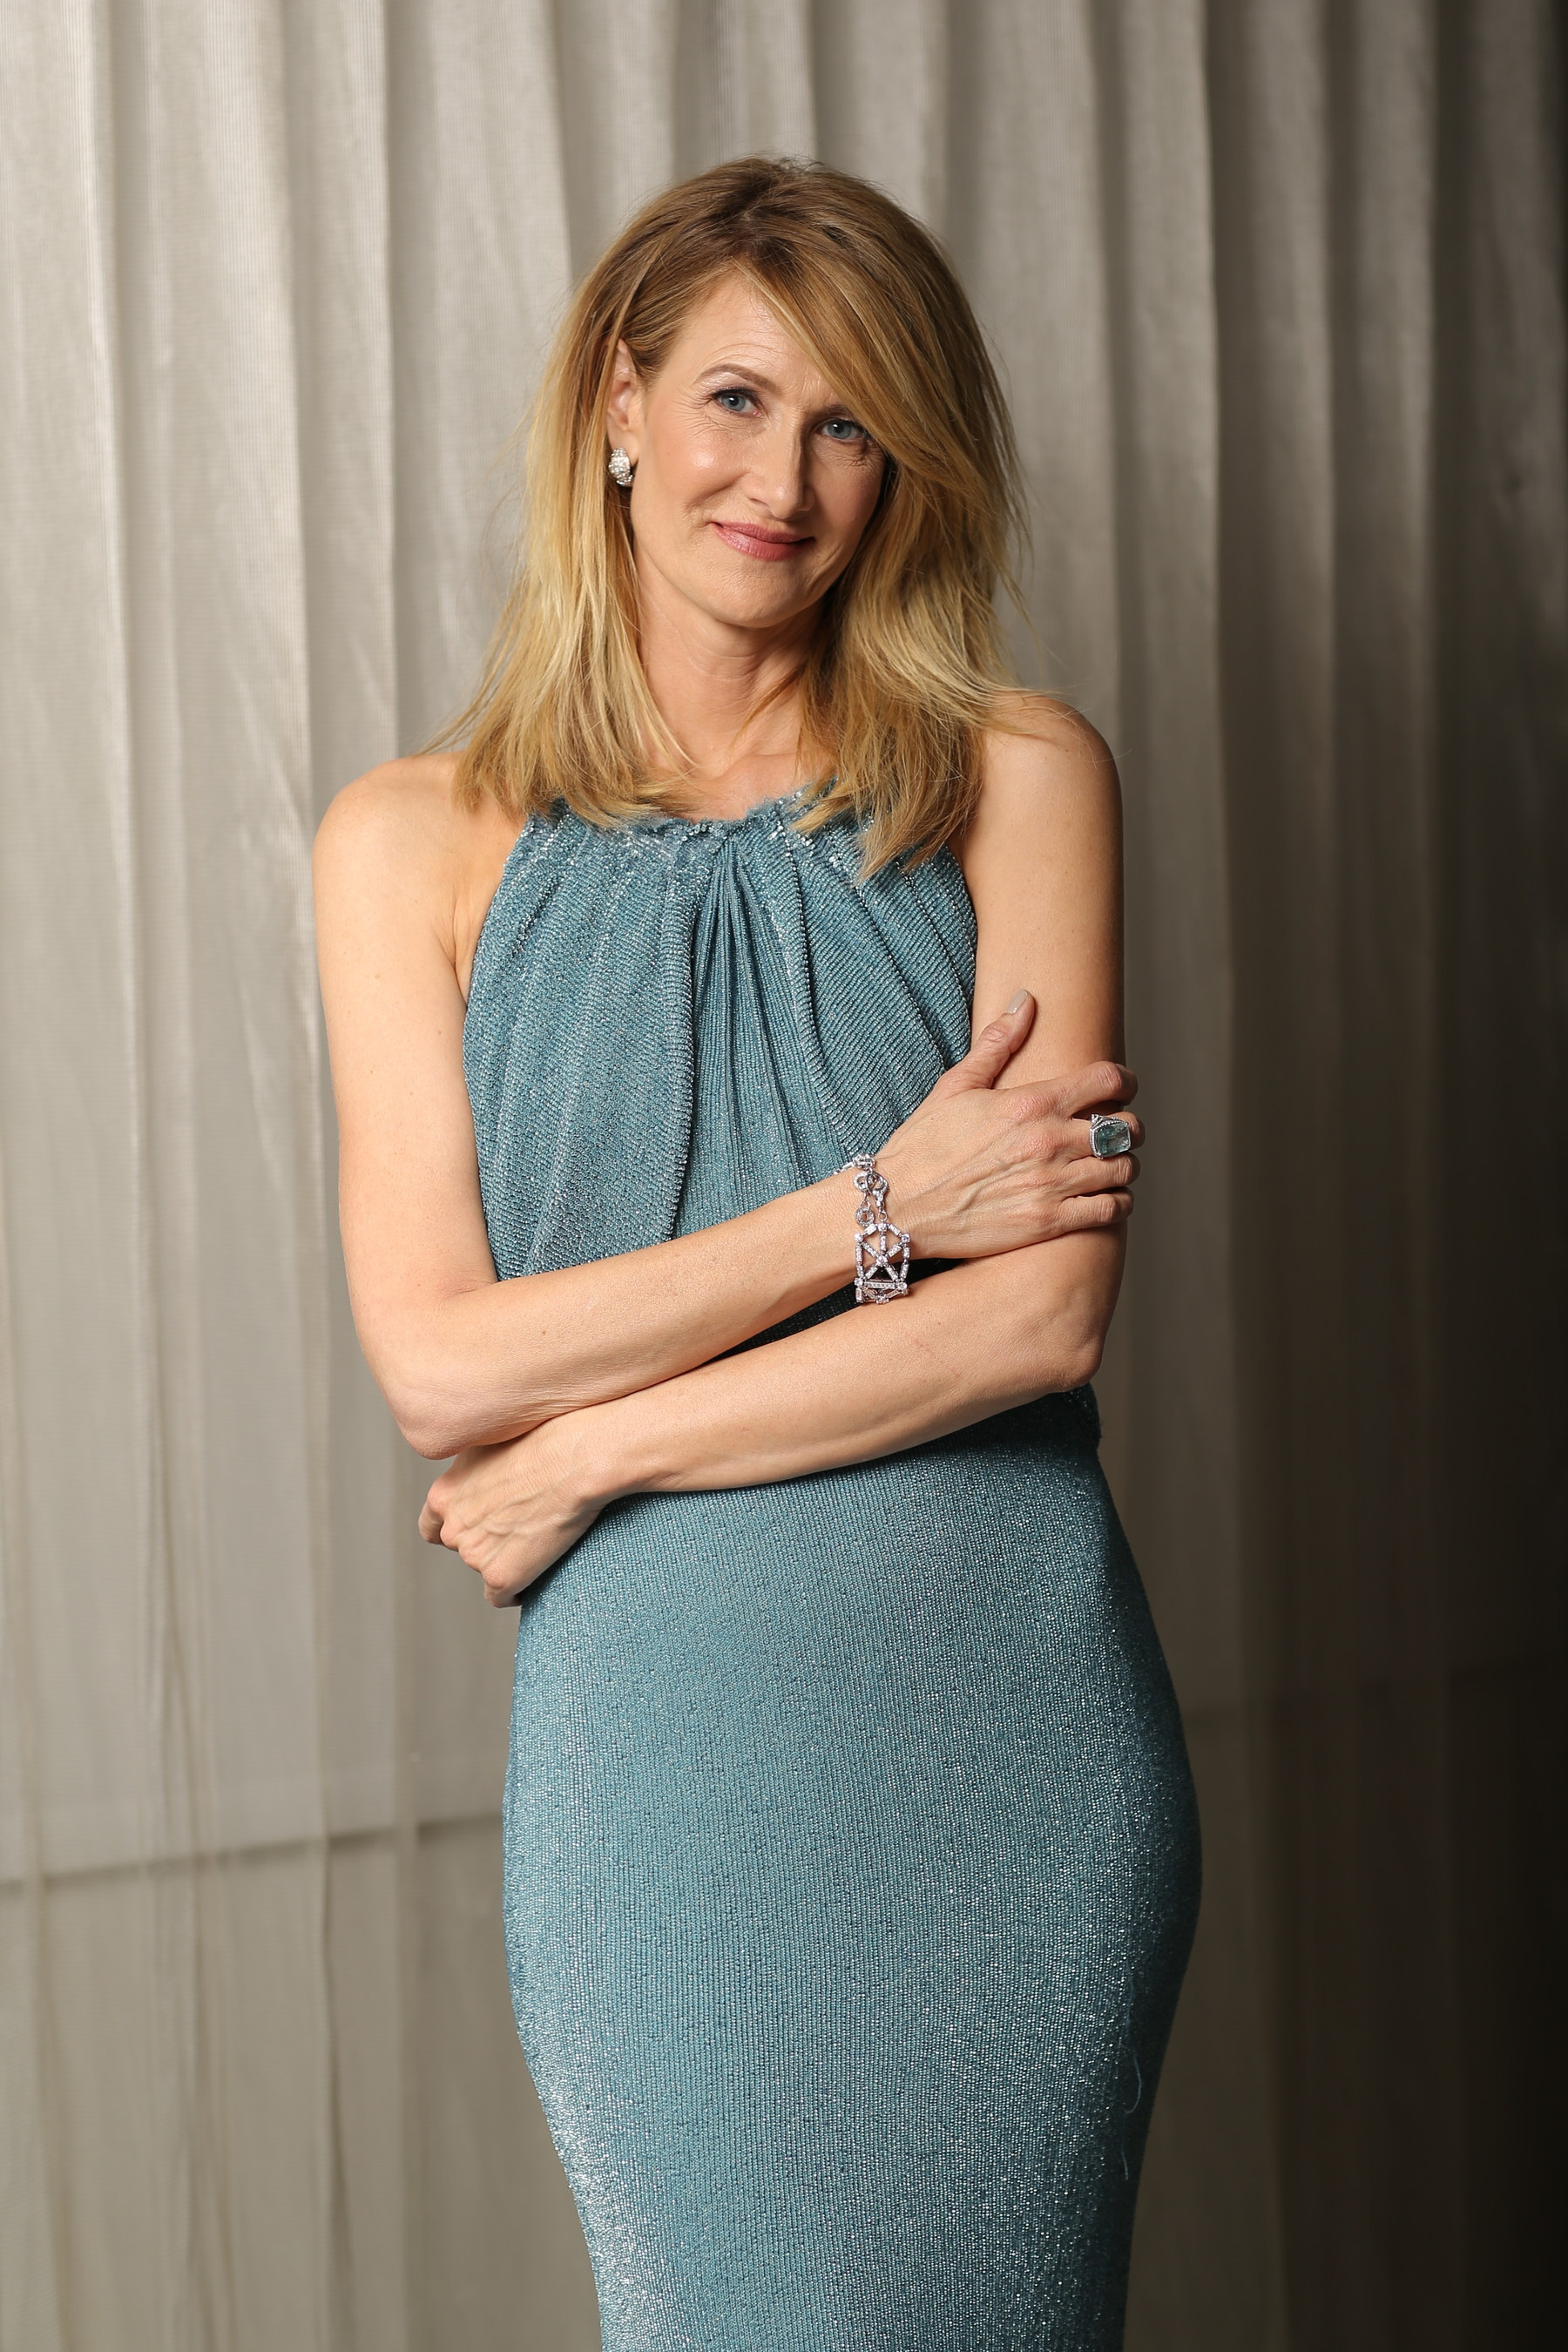 Best Supporting Actress nominee Laura Dern continues the Oscars(R) celebration by slipping into a turquoise ...